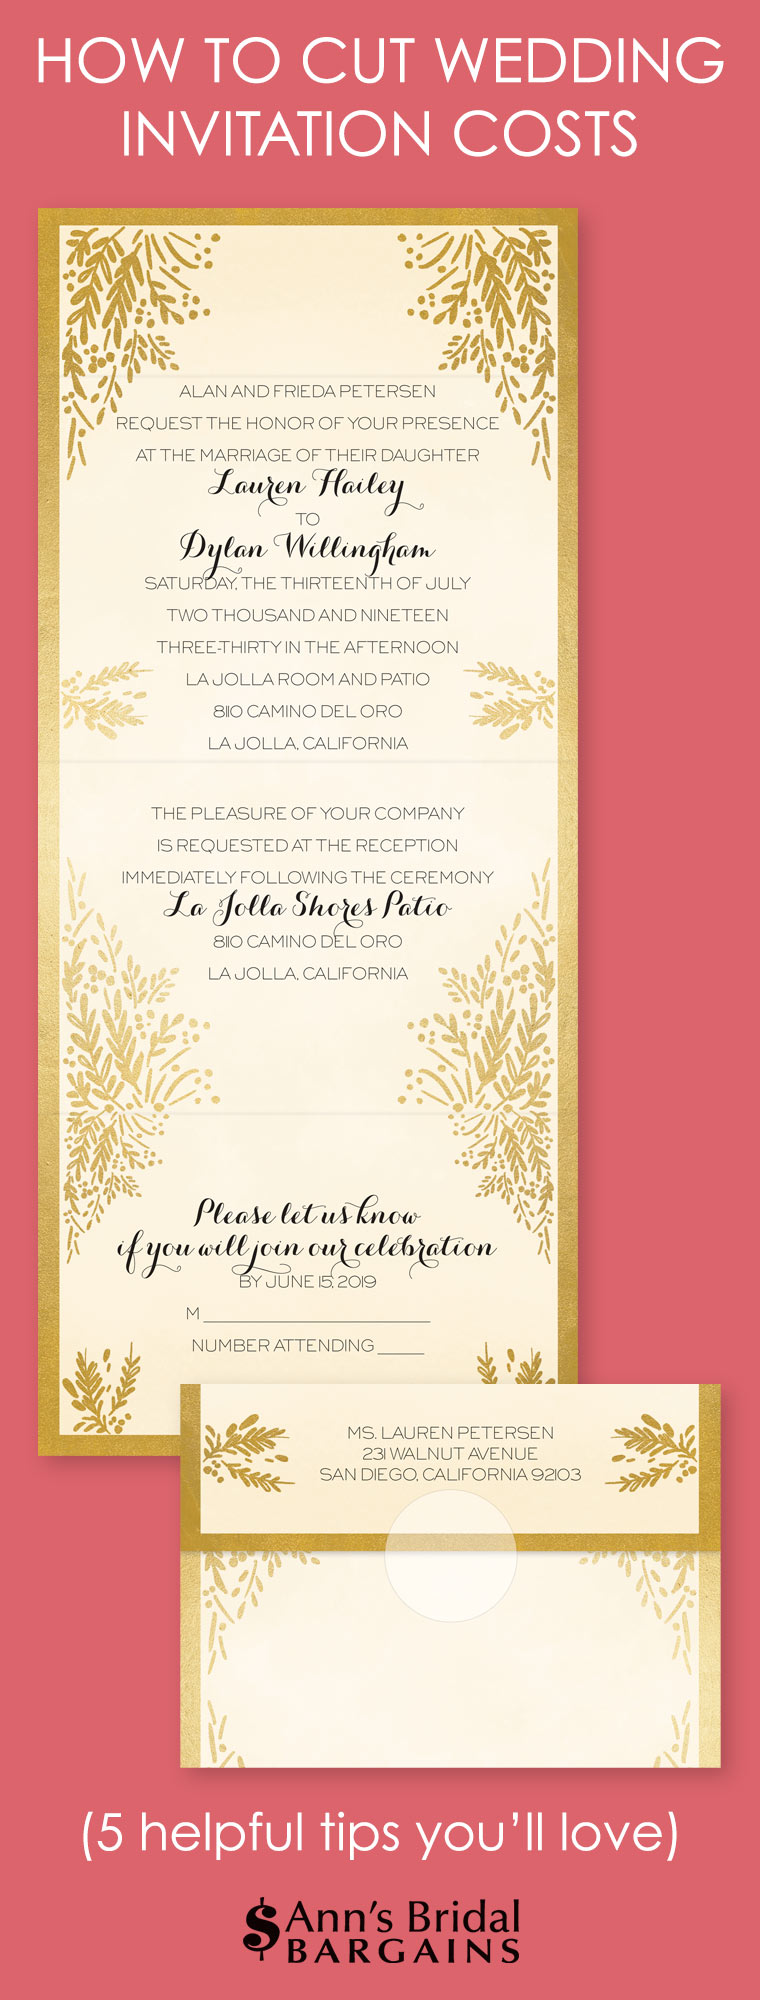 How To Cut Wedding Invitation Costs